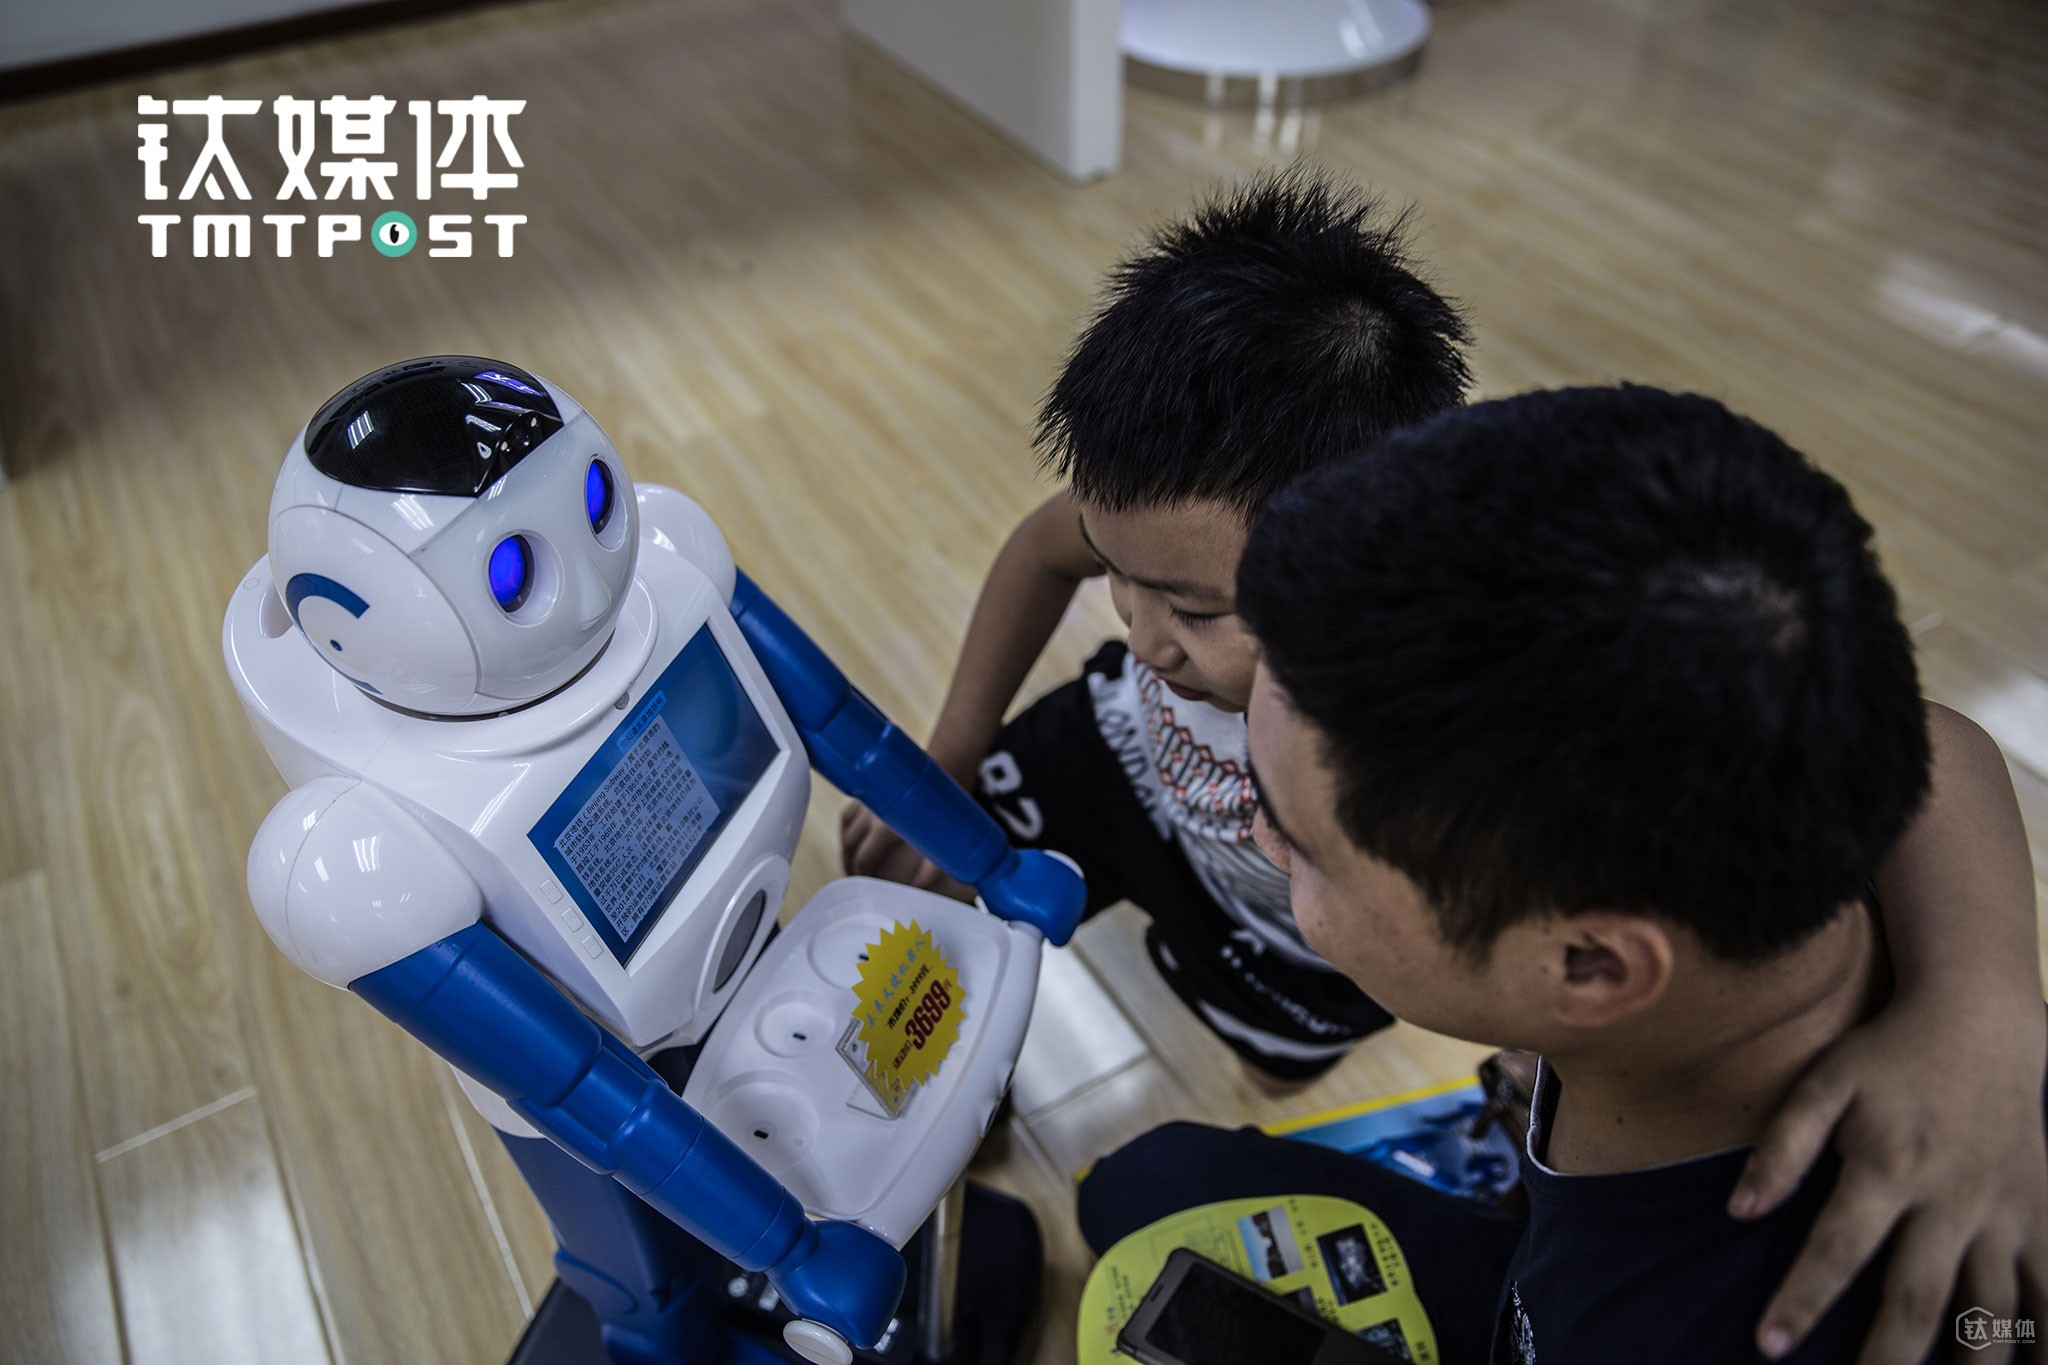 "Still, Zhongguan Village remains the ""Meca City"" for many Chinese. On July, 25th, 2016, a father took his son and paid a visit to a startup focused on robotic technologies and tried to interact with a robot."